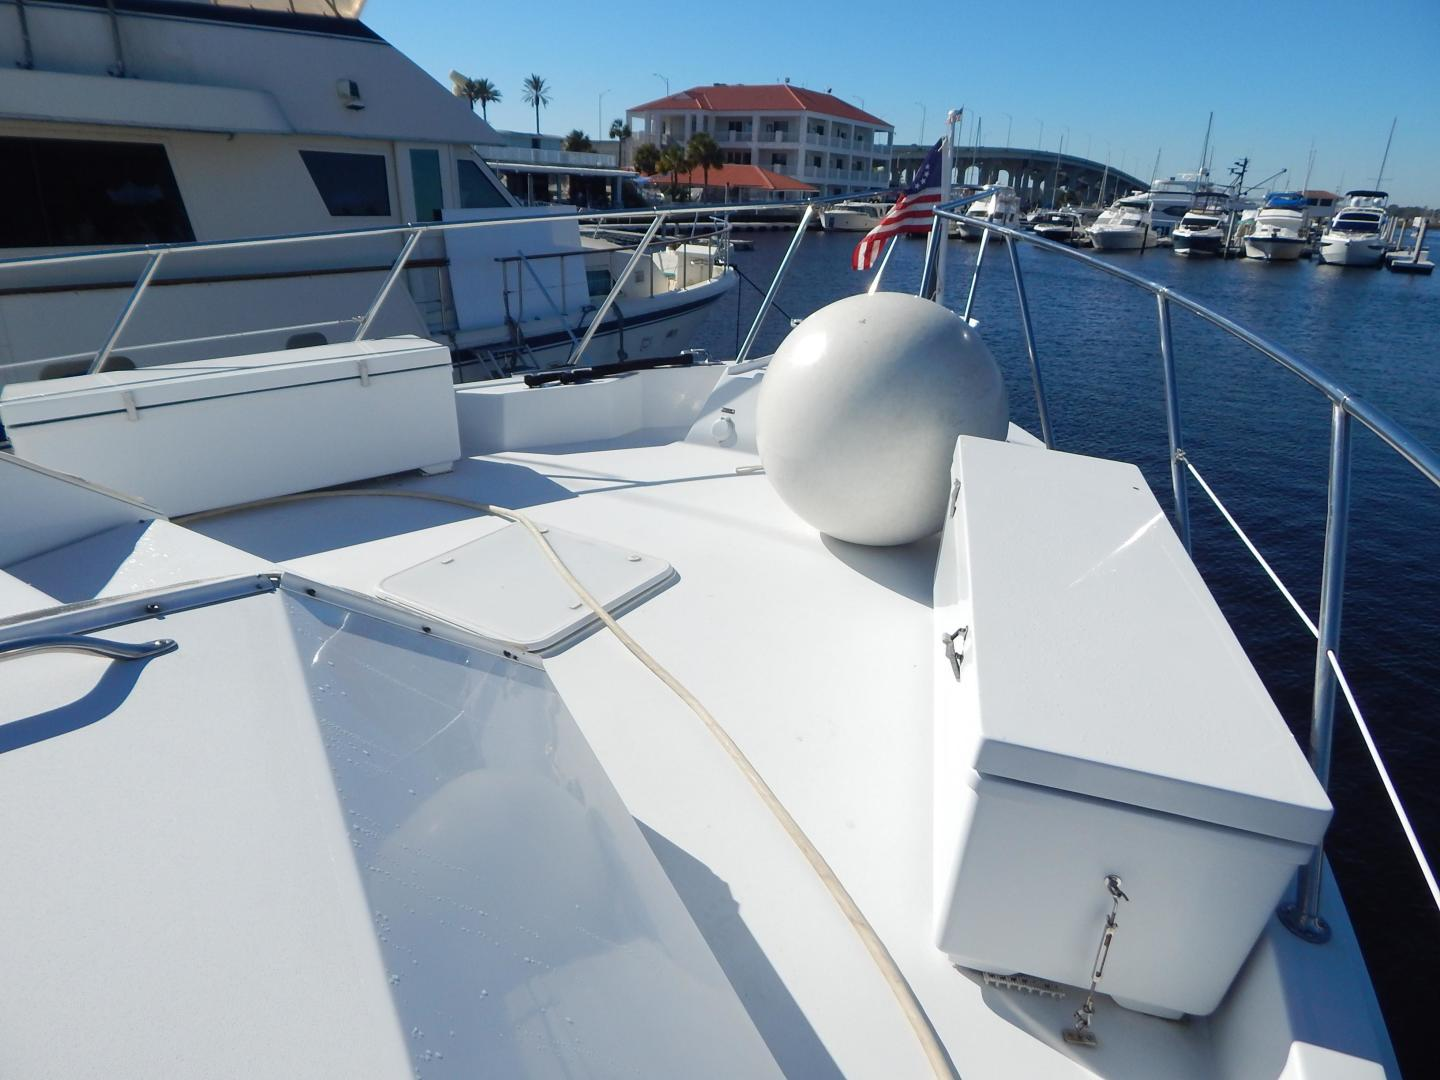 Hatteras-Sport Deck Motor Yacht 1998-I GOT YOU Jacksonville Beach-Florida-United States-1582470 | Thumbnail